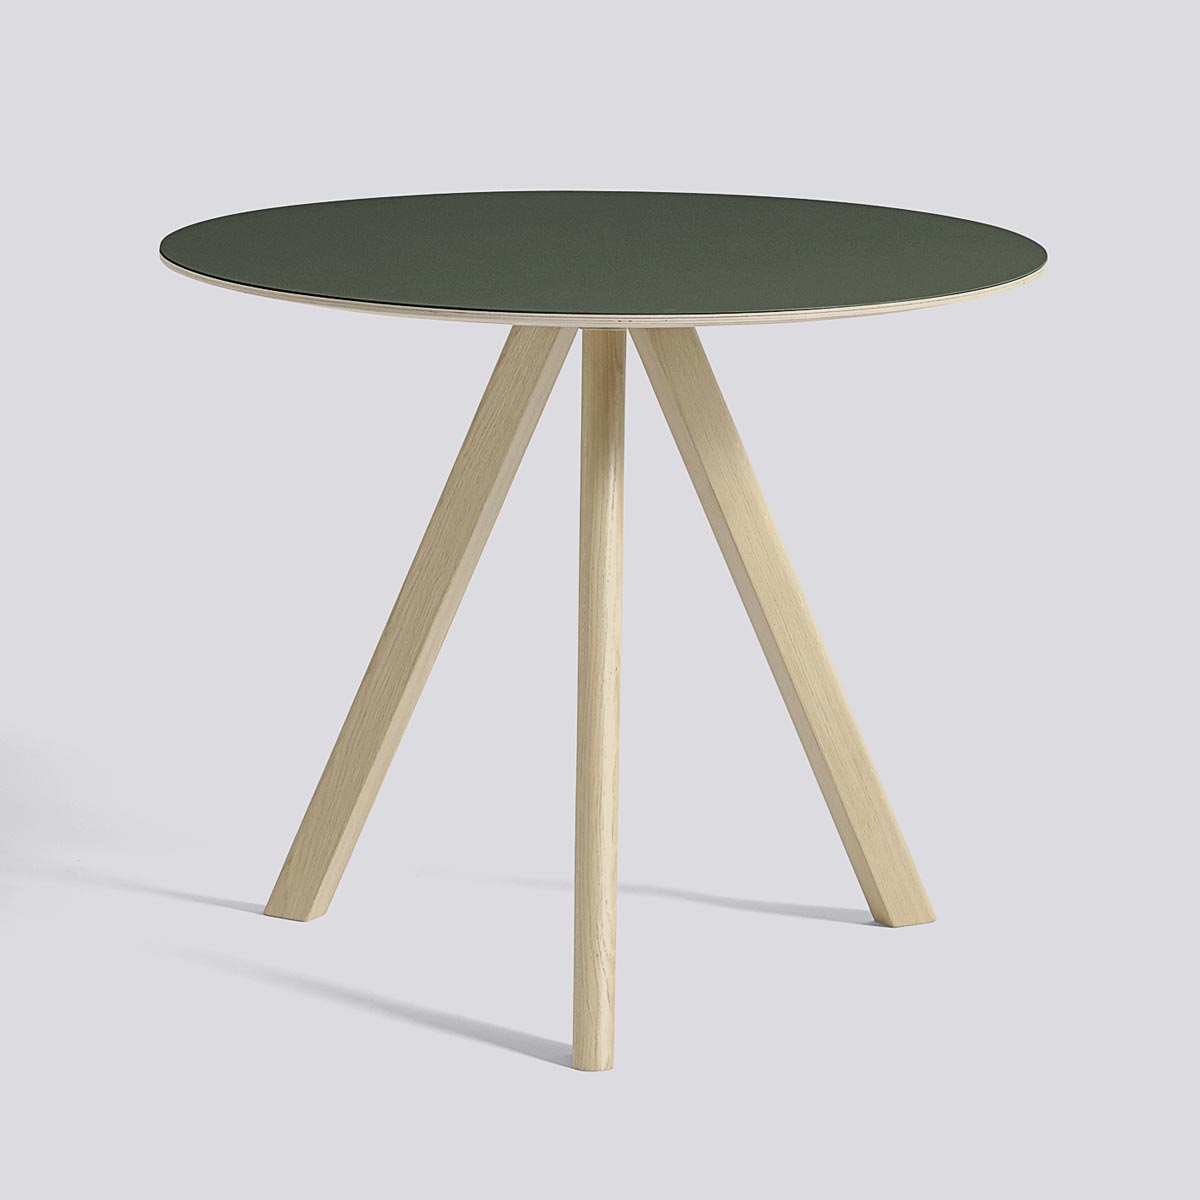 CPN Table 20 90 Green Lacquered Oak - HAY